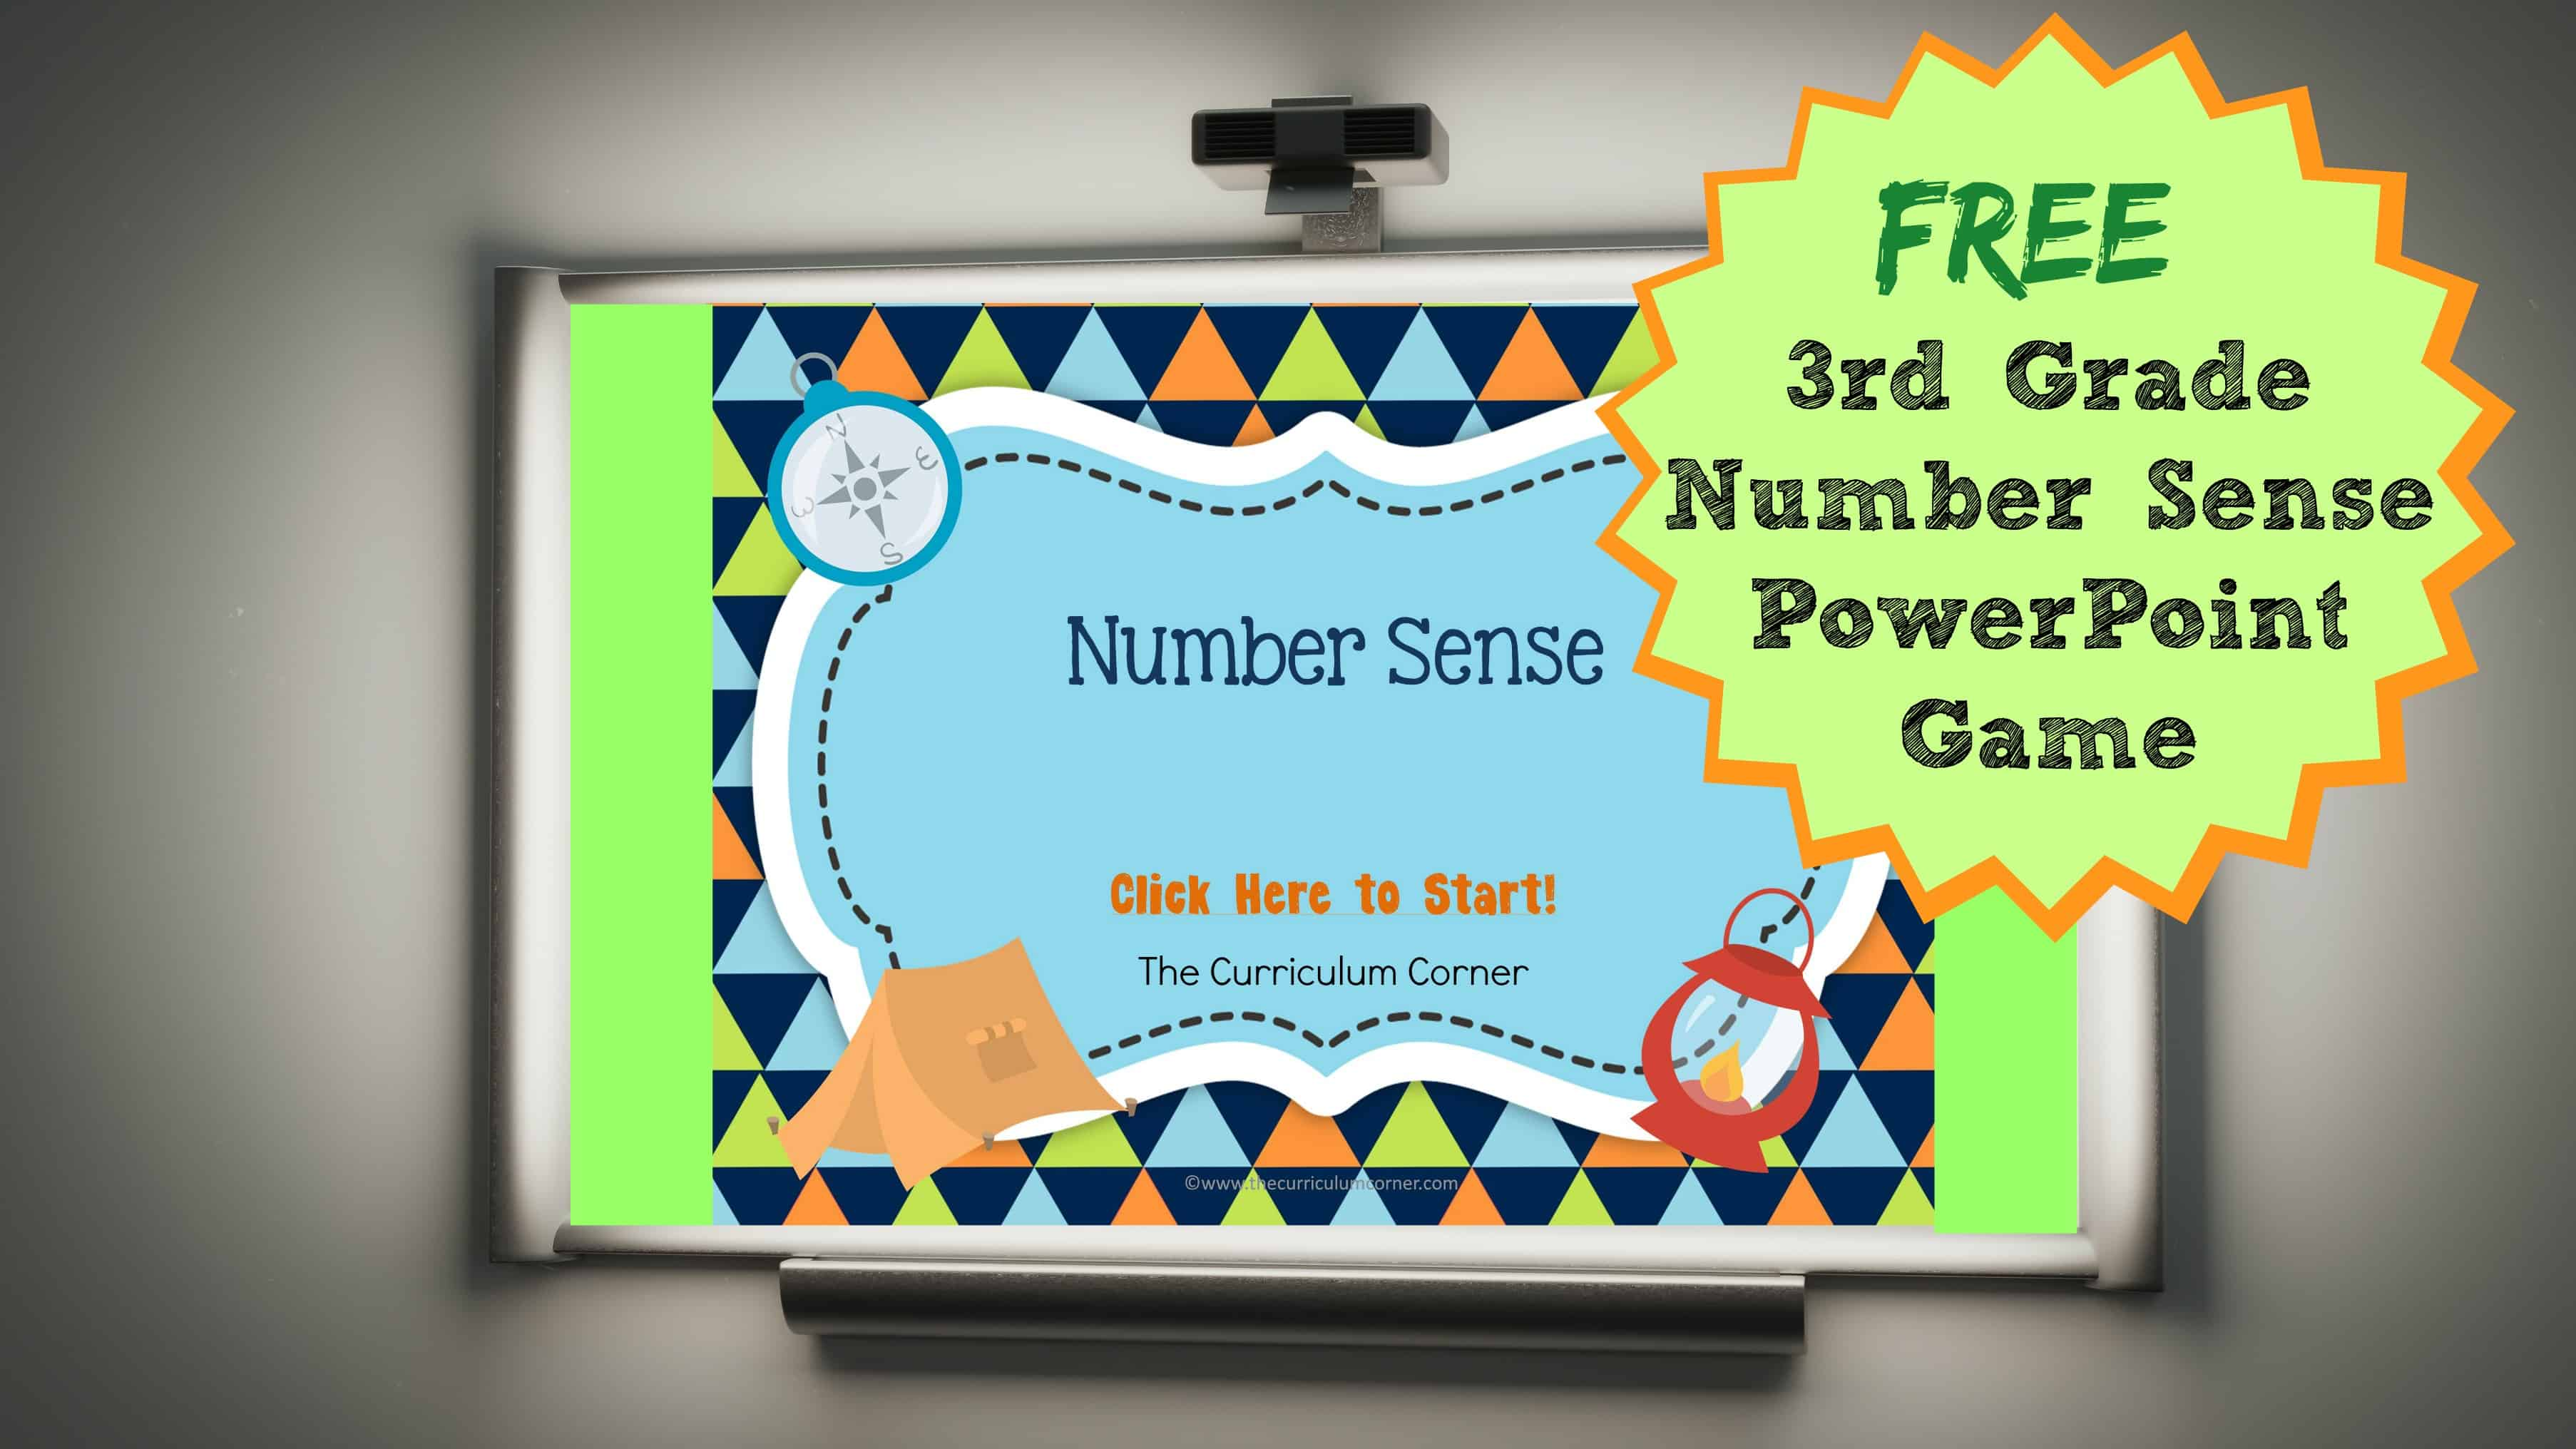 3rd Grade Number Sense PowerPoint Game